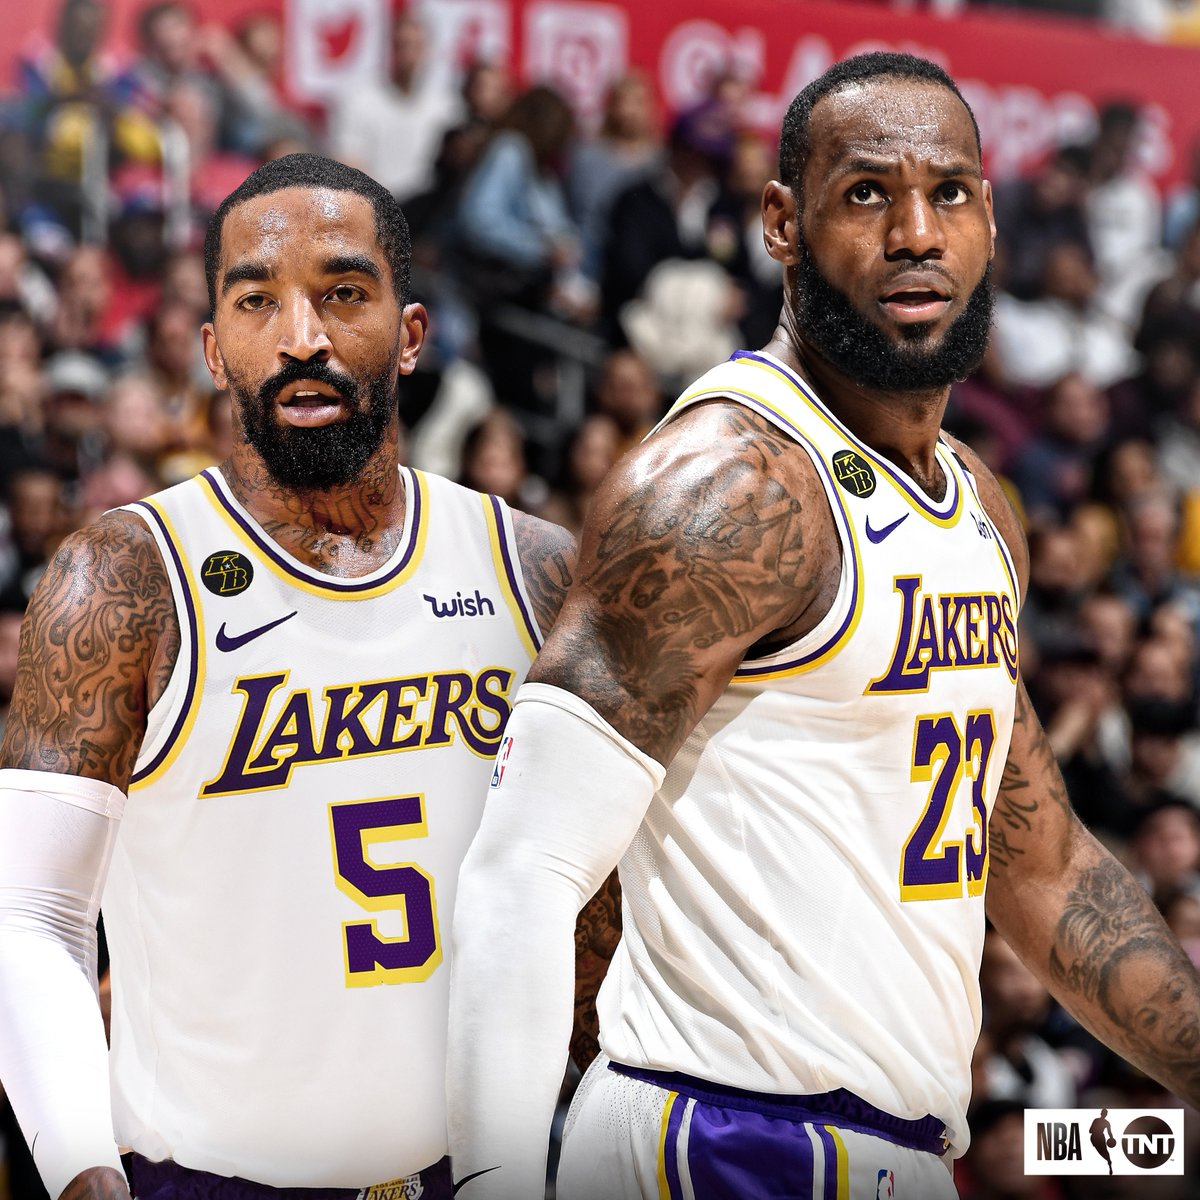 J.R. and LeBron are reuniting on the Lakers 👀 https://t.co/J2Om3IAd73